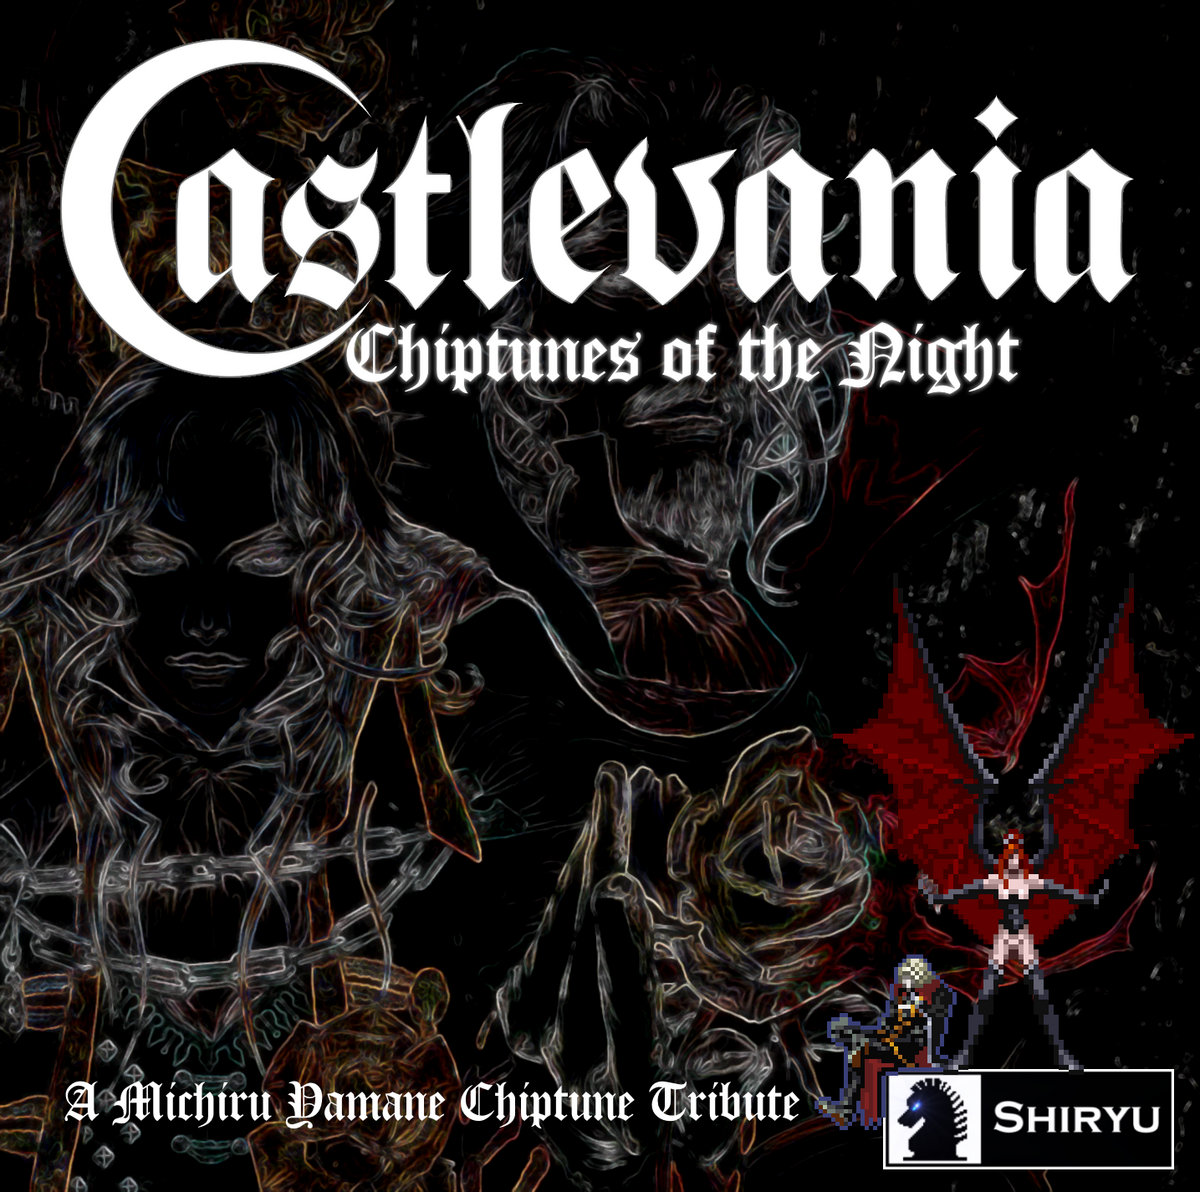 castlevania symphony of the night music download